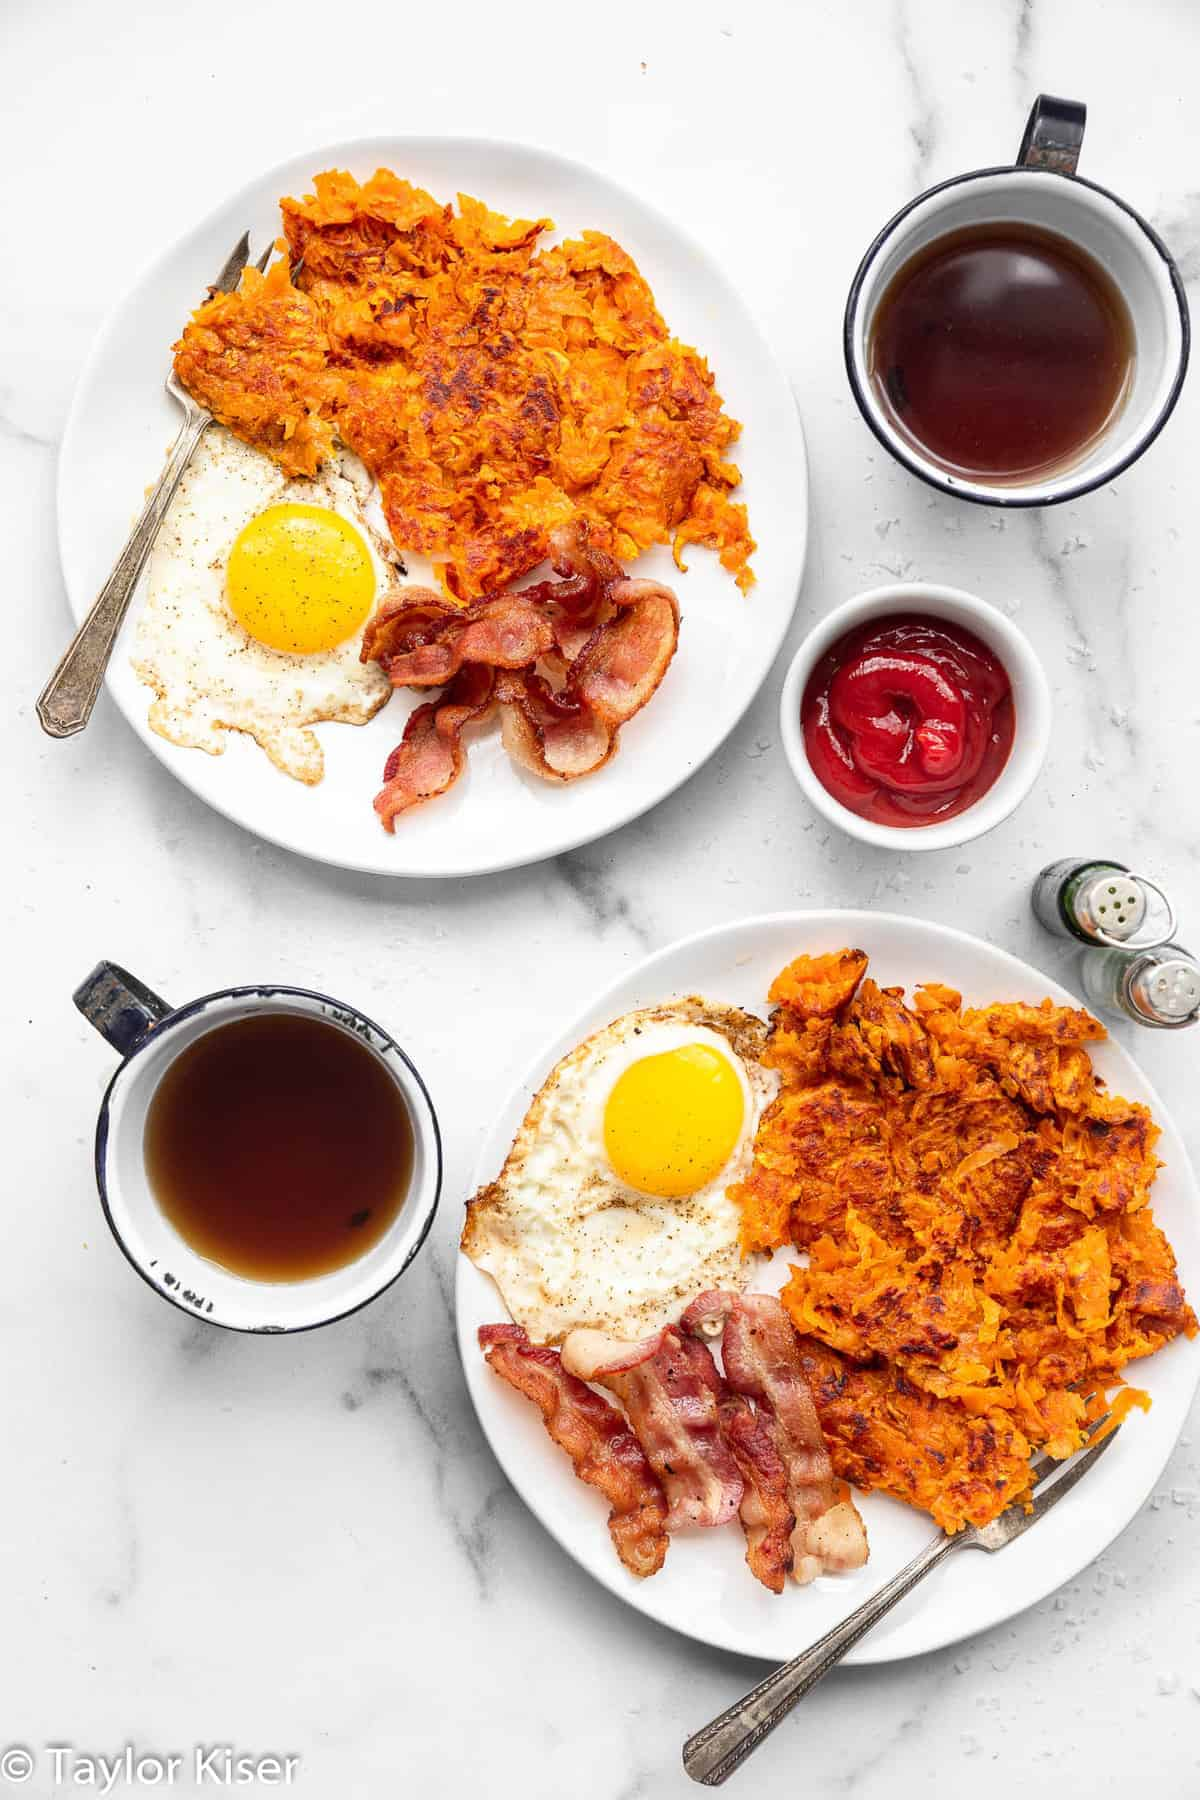 shredded sweet potato hash browns on a plate with eggs